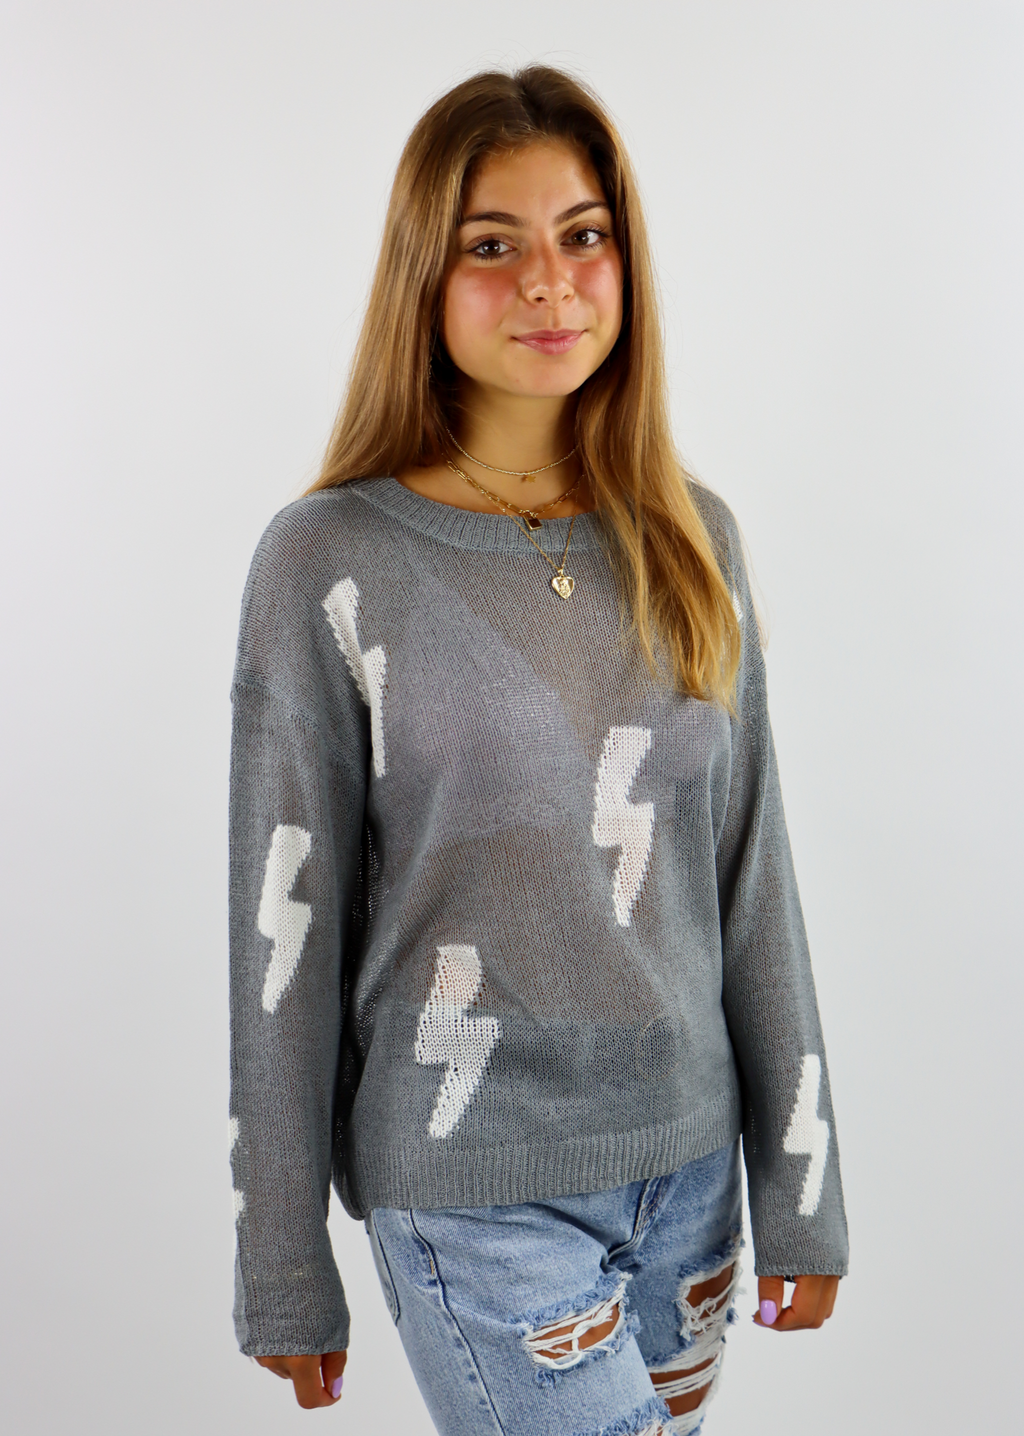 White Lightning Sweater ★ Grey